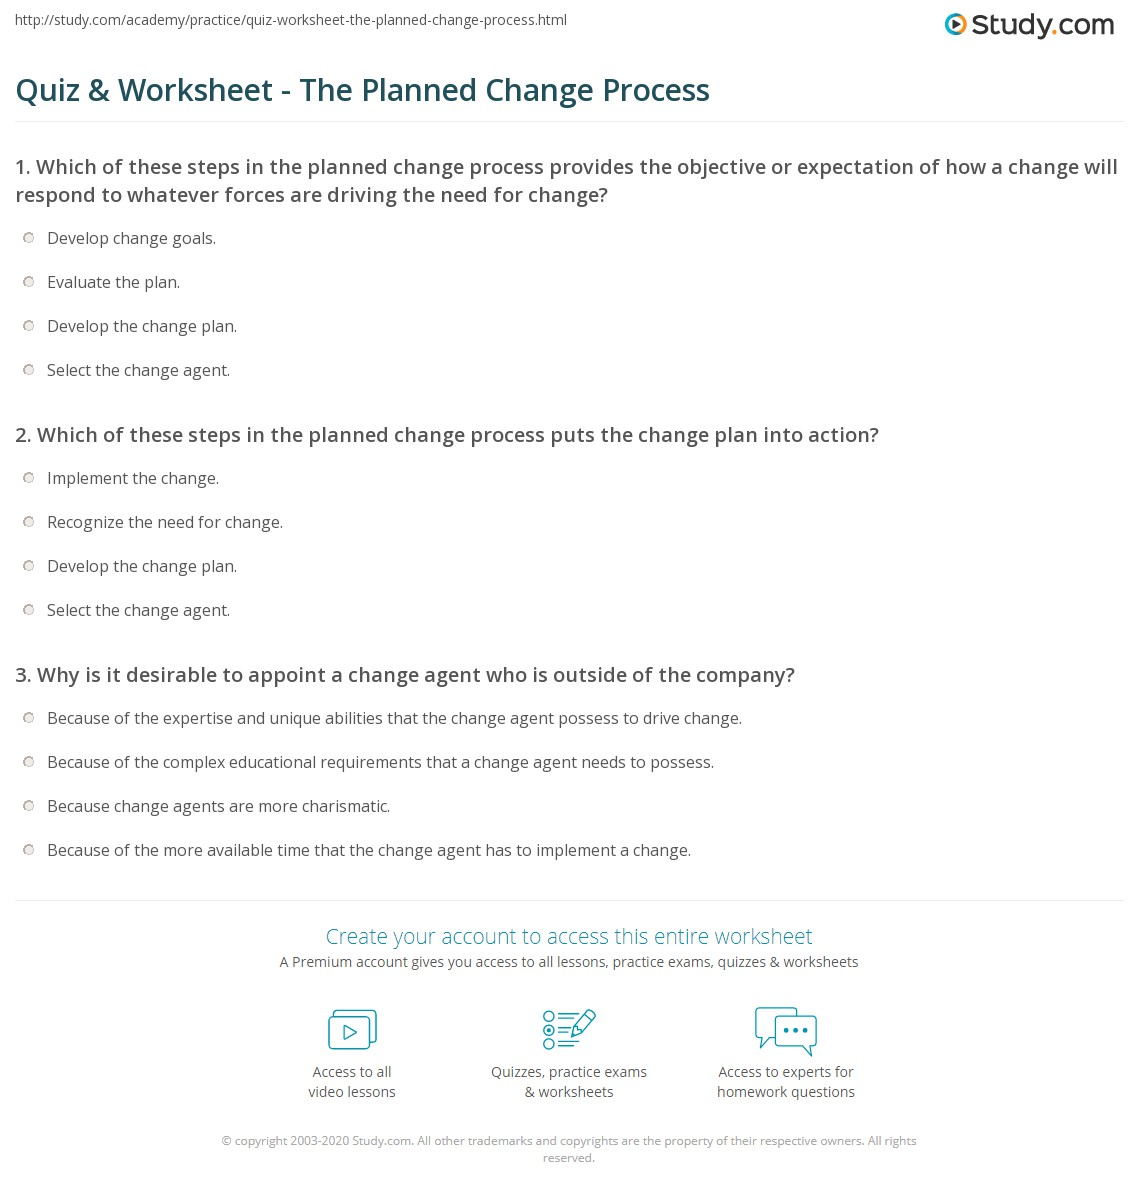 worksheet Change Plan Worksheet quiz worksheet the planned change process study com which of these steps in puts plan into action